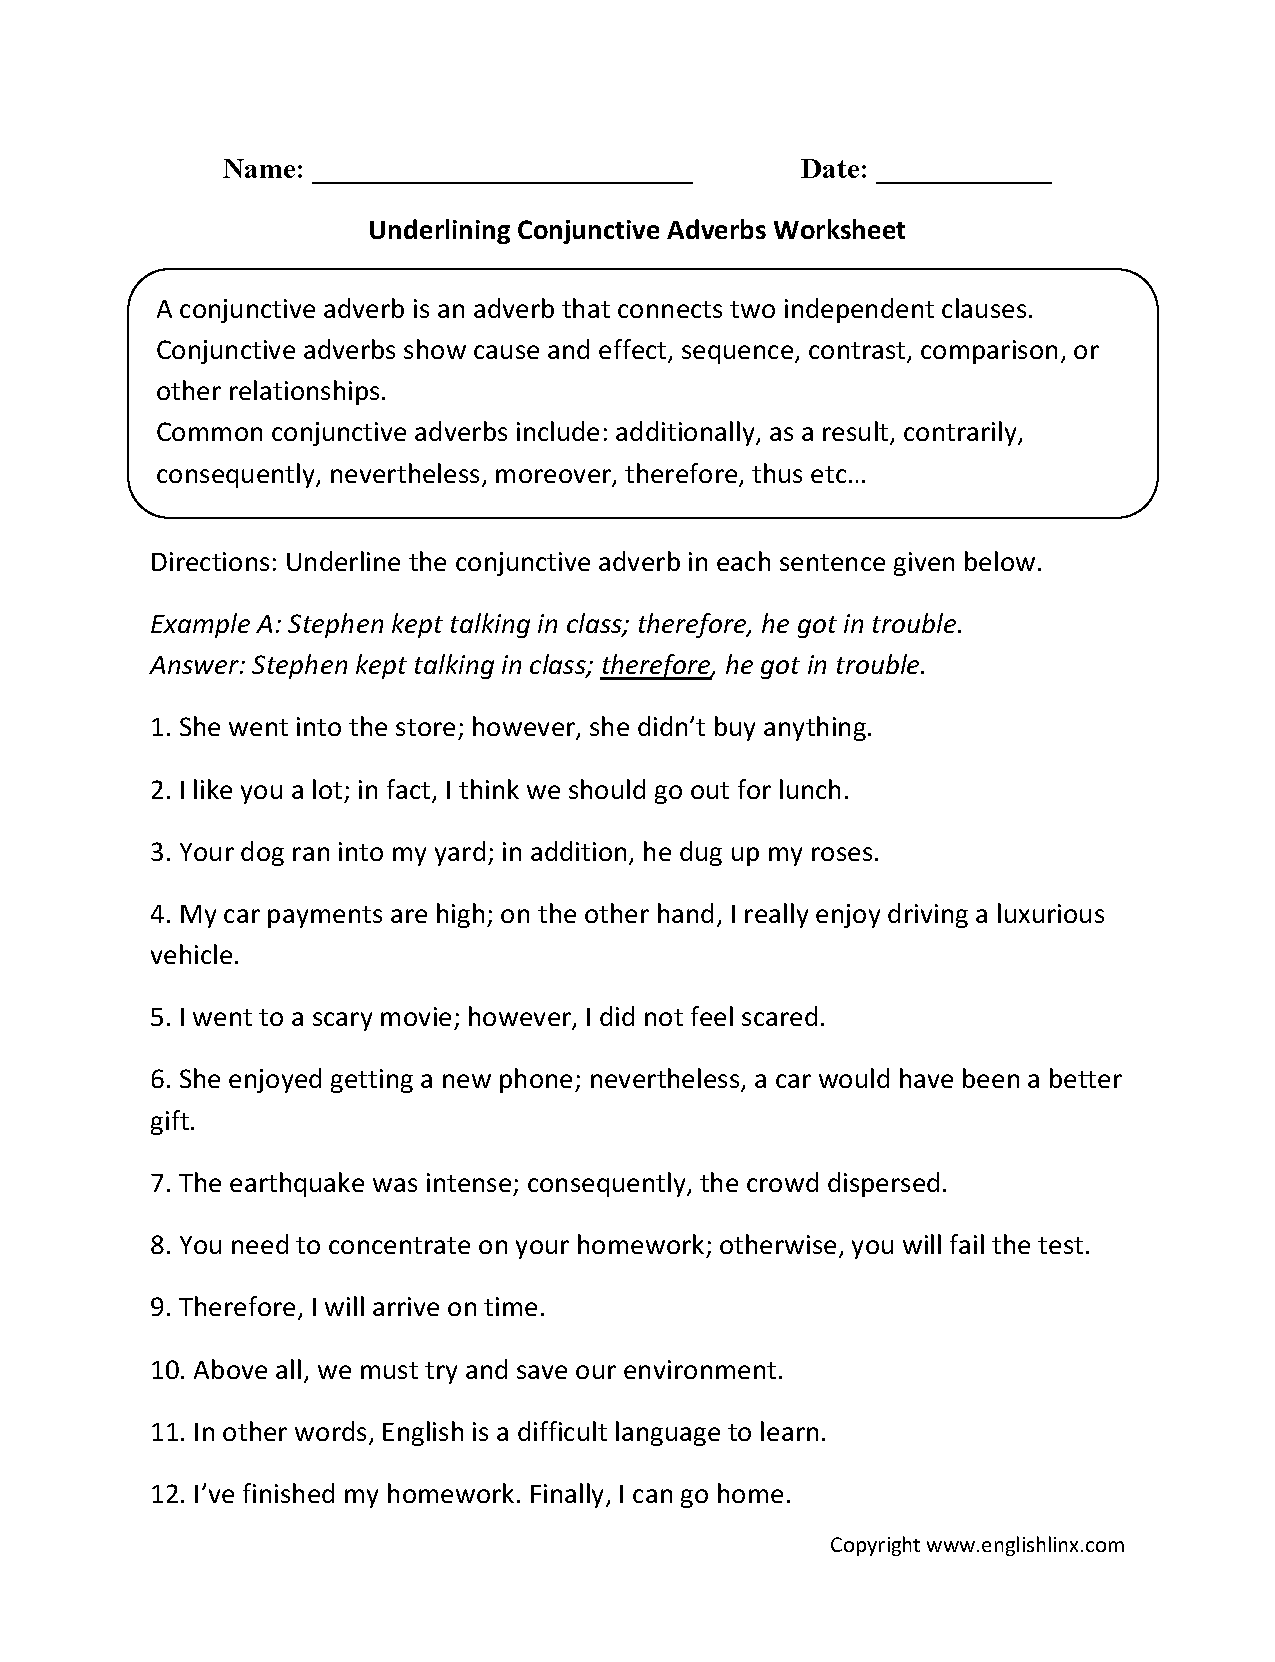 Weirdmailus  Seductive Englishlinxcom  Conjunctions Worksheets With Exquisite Worksheet With Awesome Beginning Sounds Worksheets For Kindergarten Also The Rock Cycle Worksheets In Addition Personal Financial Worksheet And Rd Grade Algebra Worksheets As Well As Area Of Polygons Worksheet Pdf Additionally Addition Subtraction Worksheet From Englishlinxcom With Weirdmailus  Exquisite Englishlinxcom  Conjunctions Worksheets With Awesome Worksheet And Seductive Beginning Sounds Worksheets For Kindergarten Also The Rock Cycle Worksheets In Addition Personal Financial Worksheet From Englishlinxcom